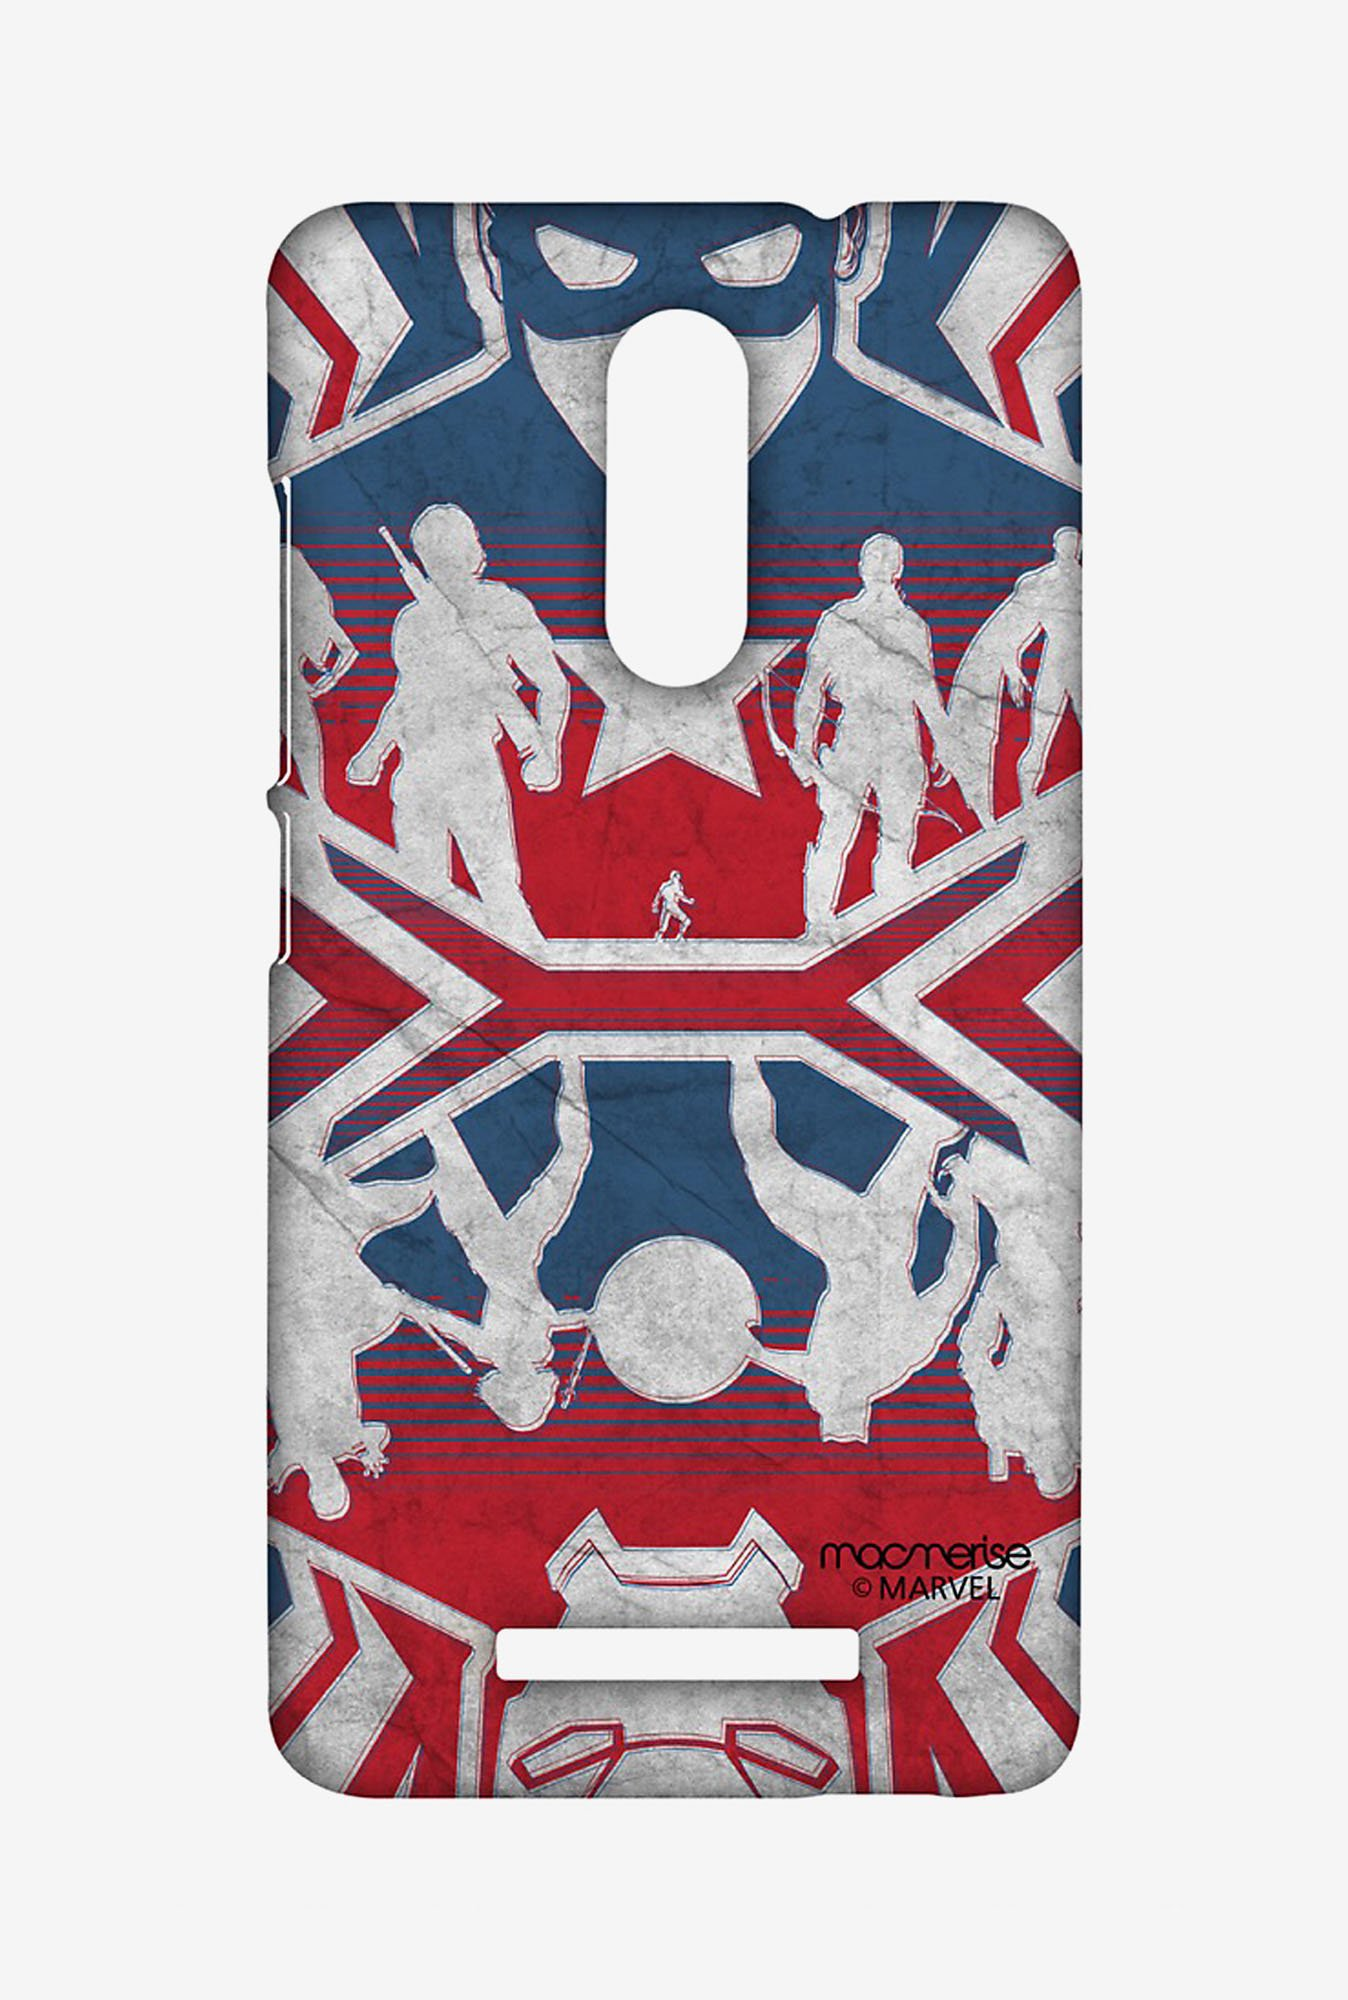 Macmerise XACN3SMM0488 Reflection Captain America Sublime Case for Xiaomi Redmi Note 3